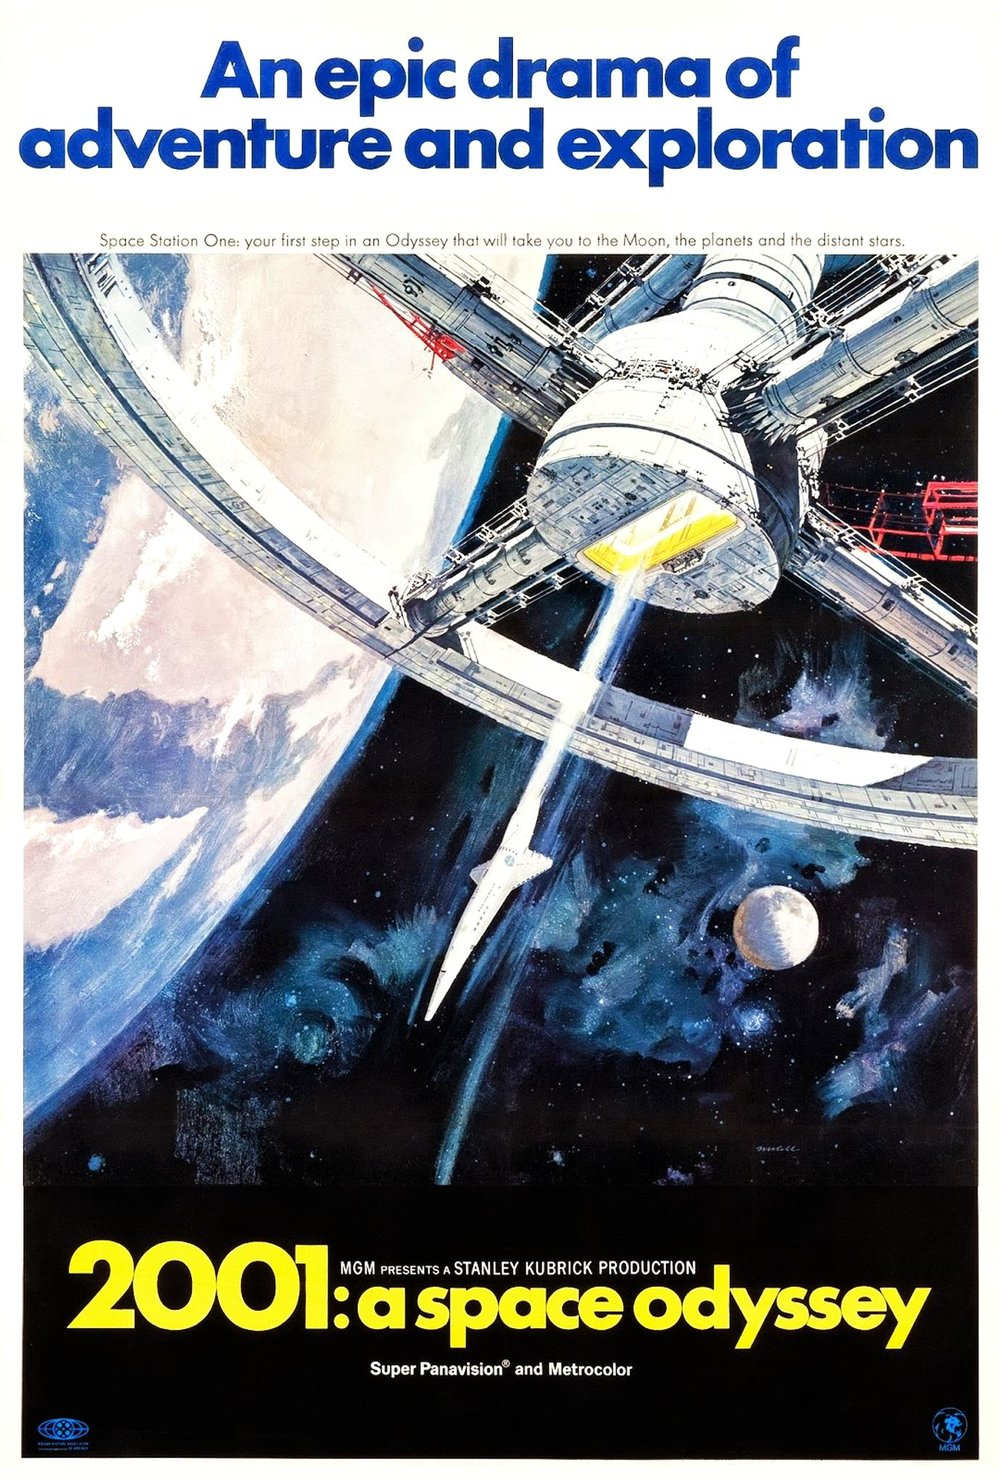 2001: A Space Odyssey (1968) - Best guess: An epic drama of adventure and exploration?